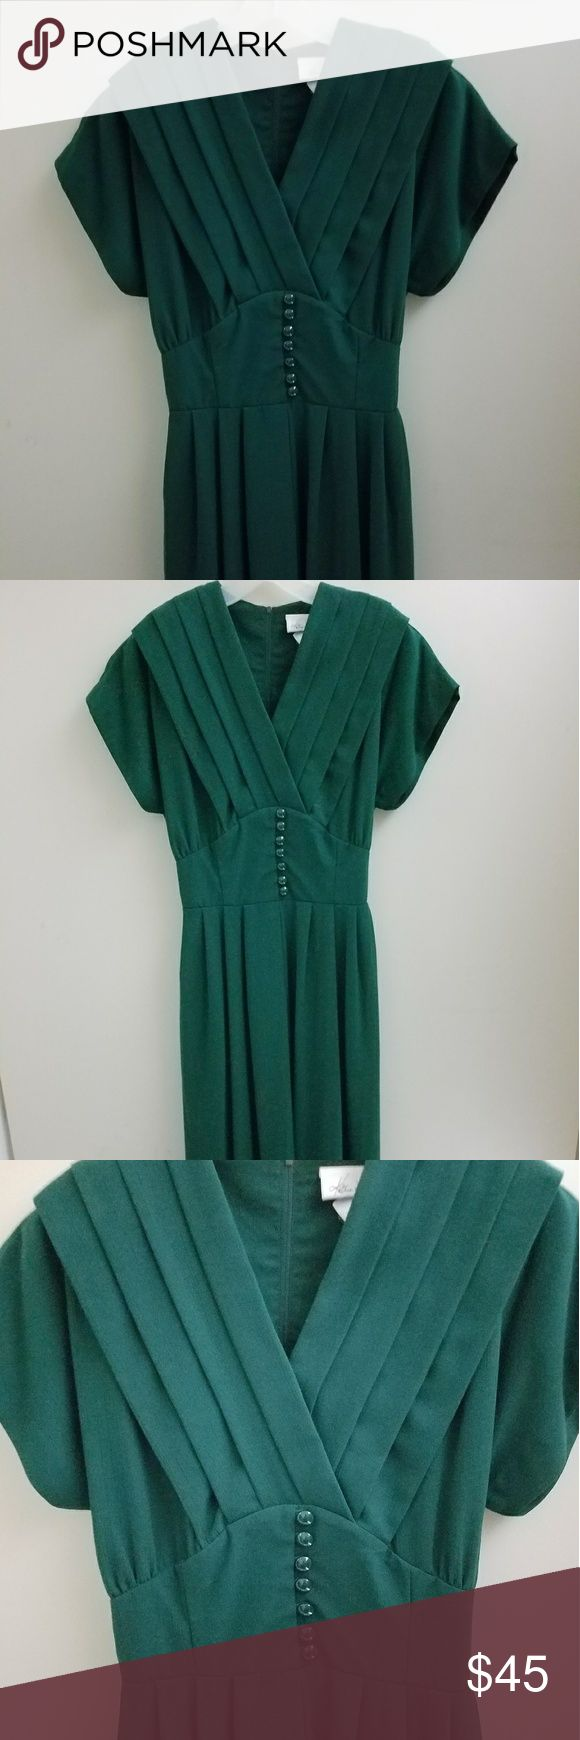 Gorgeous 80s Does 30s Emerald Dress Ahh, such a unique find! A vintage piece from the 80s or 90s meant to look exactly like a 1930s-40s dress. The silhouette is so sexy, but demur. In the S-M range. Vintage Dresses